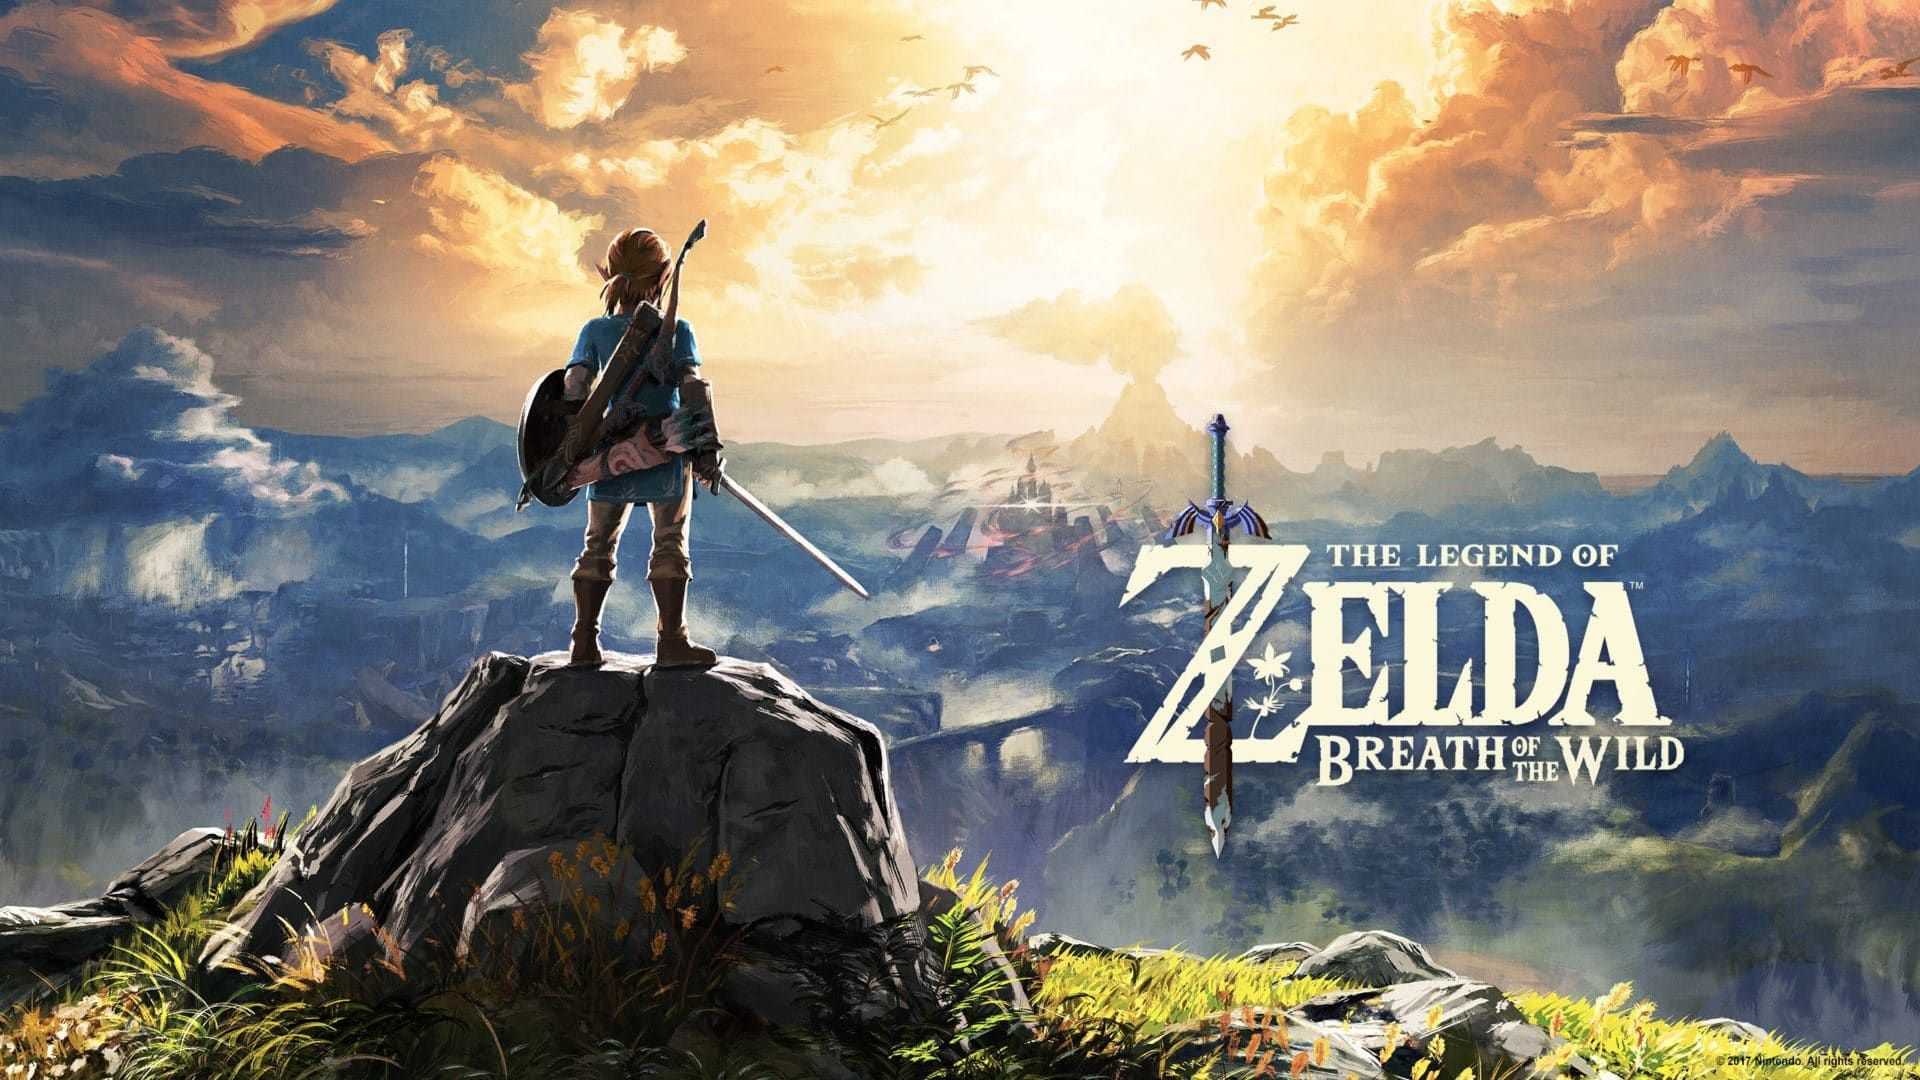 Breath Of The Wild Best Selling Zelda Since Ocarina Of Time In